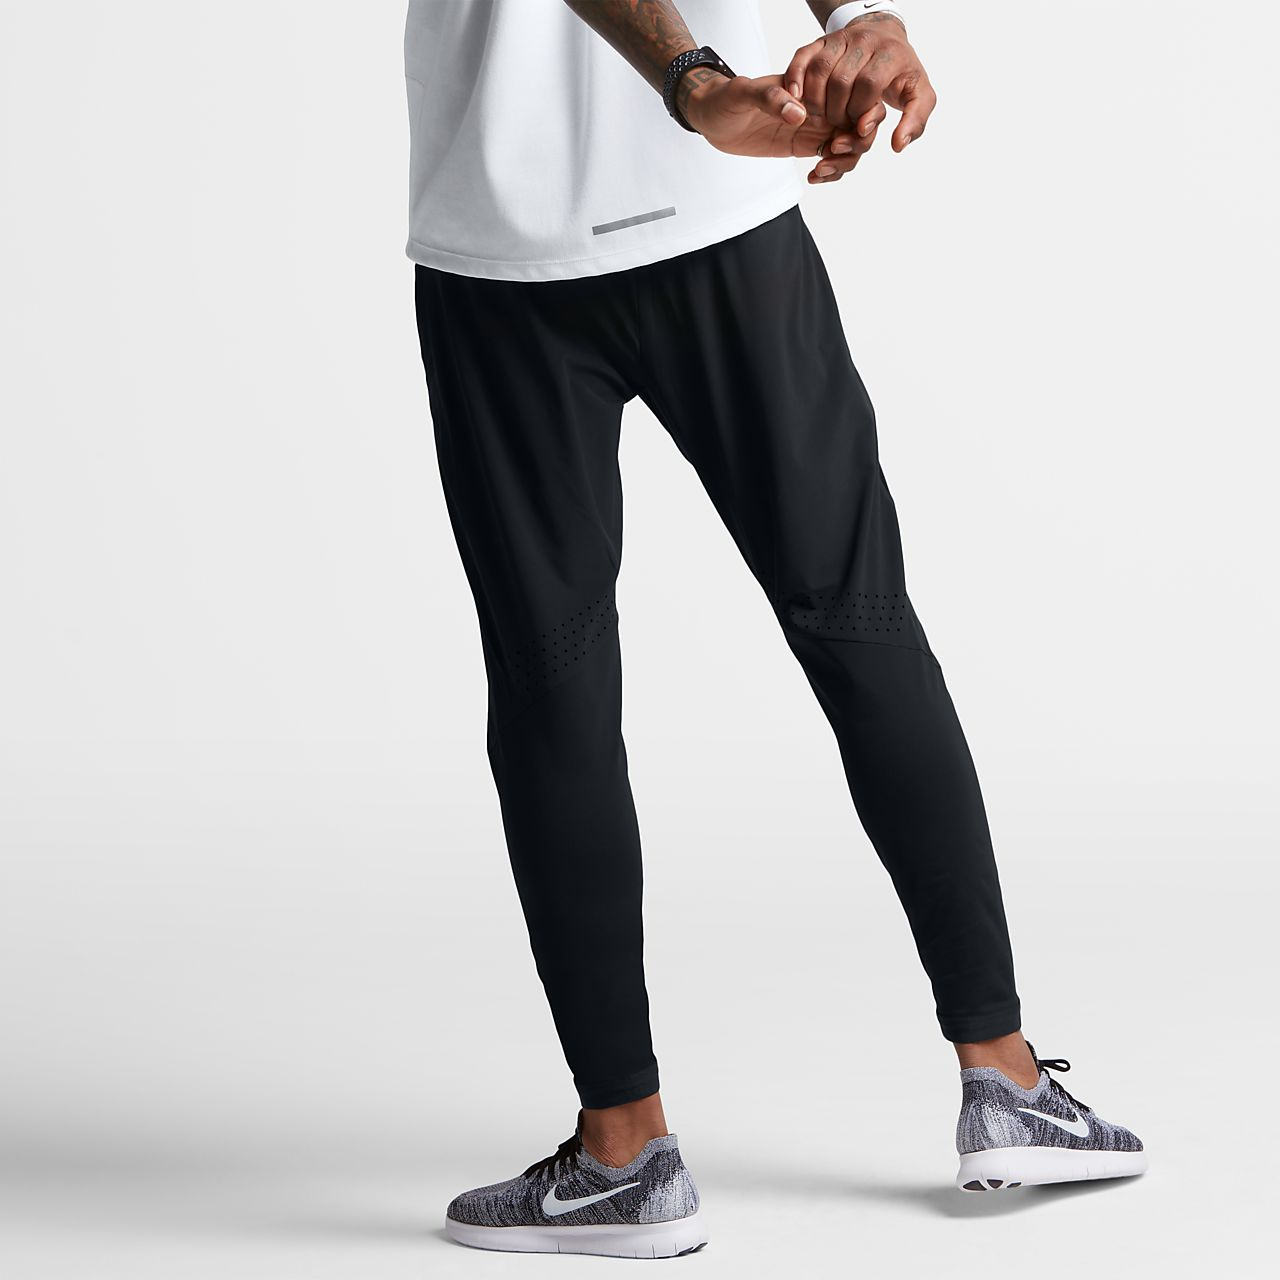 nike free 5.0 with jeans